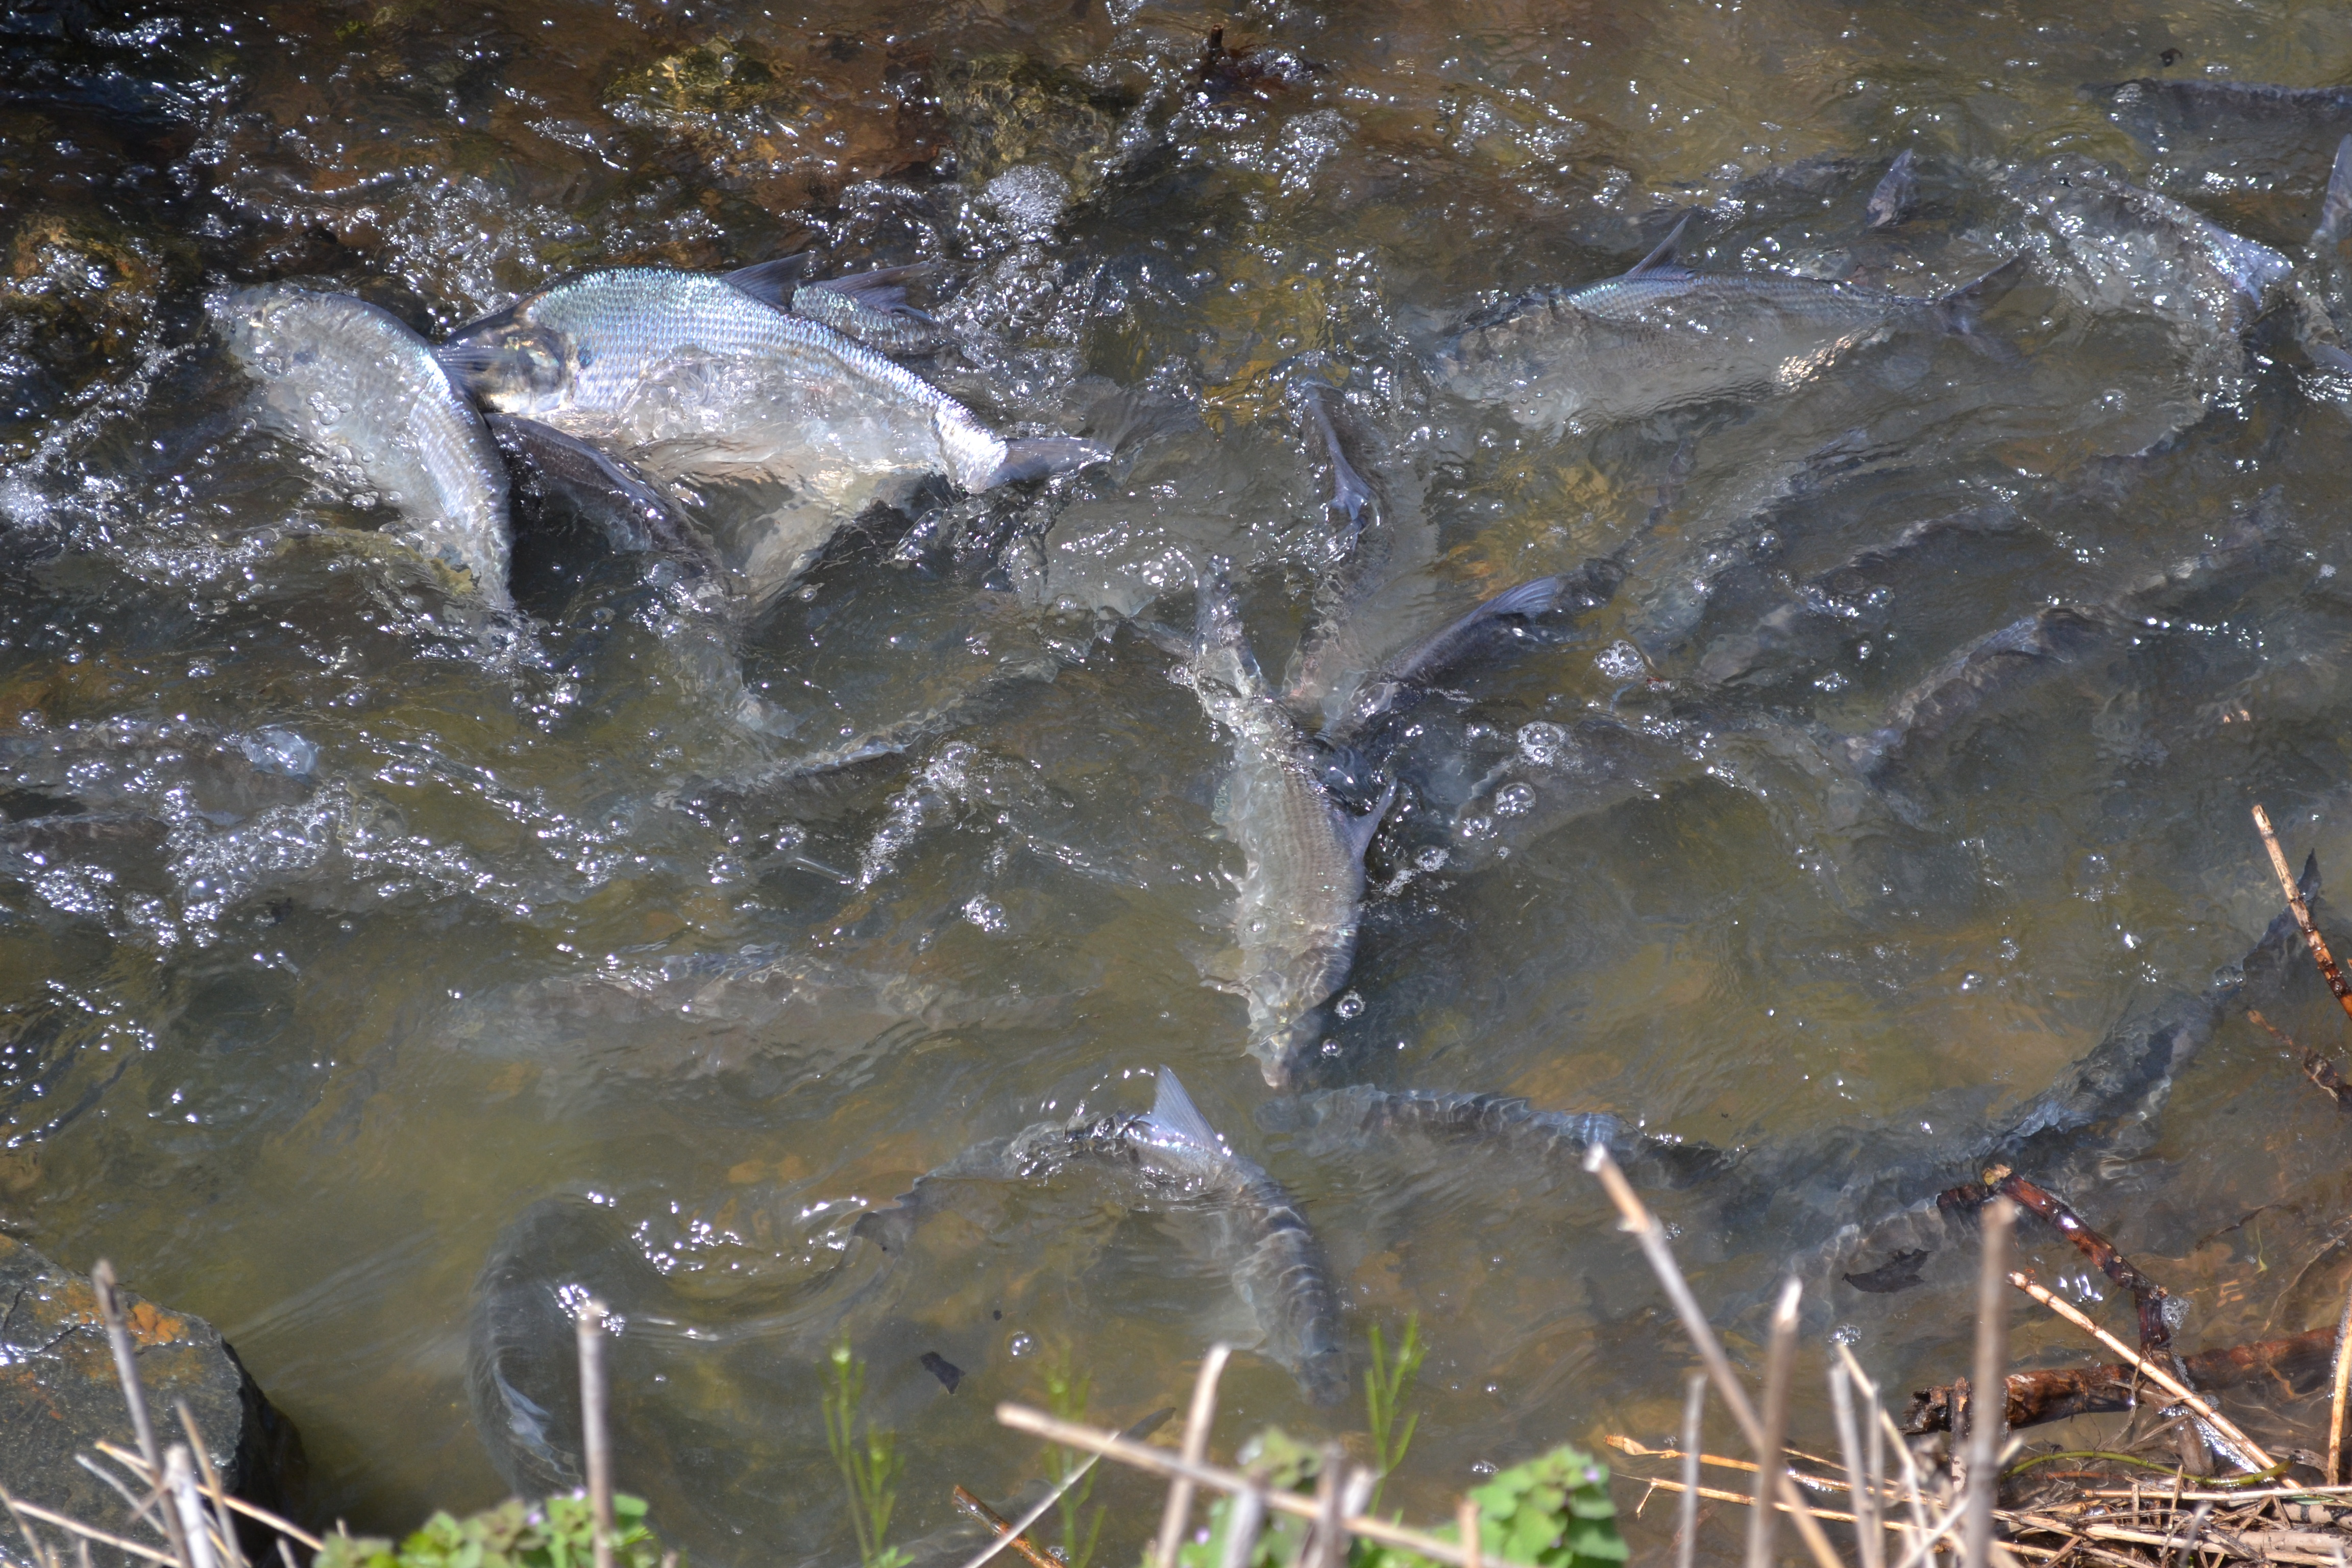 Ocean Pines Md >> 04/23/2015 | Spawning Shad Attract Onlookers Near Ocean Pines Pond | News Ocean City MD